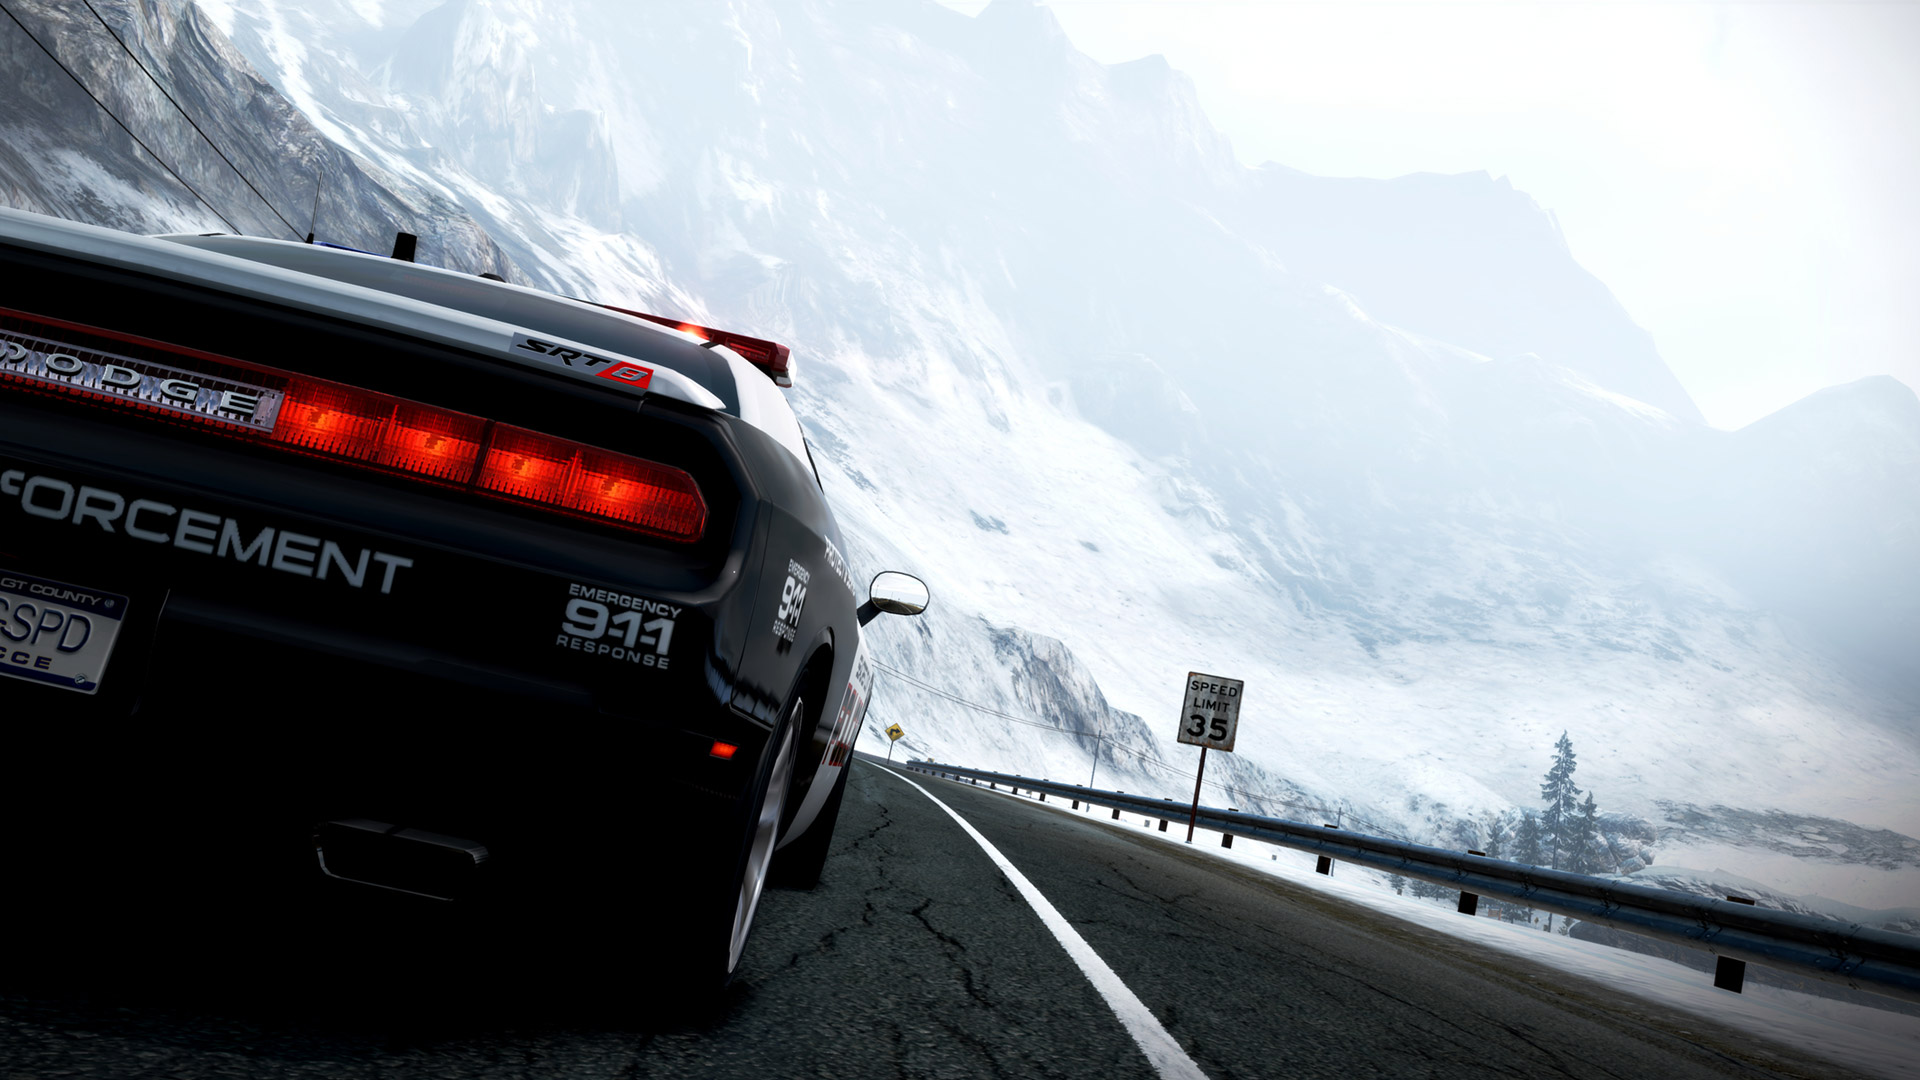 Need for Speed: Hot Pursuit Wallpaper in 1920x1080